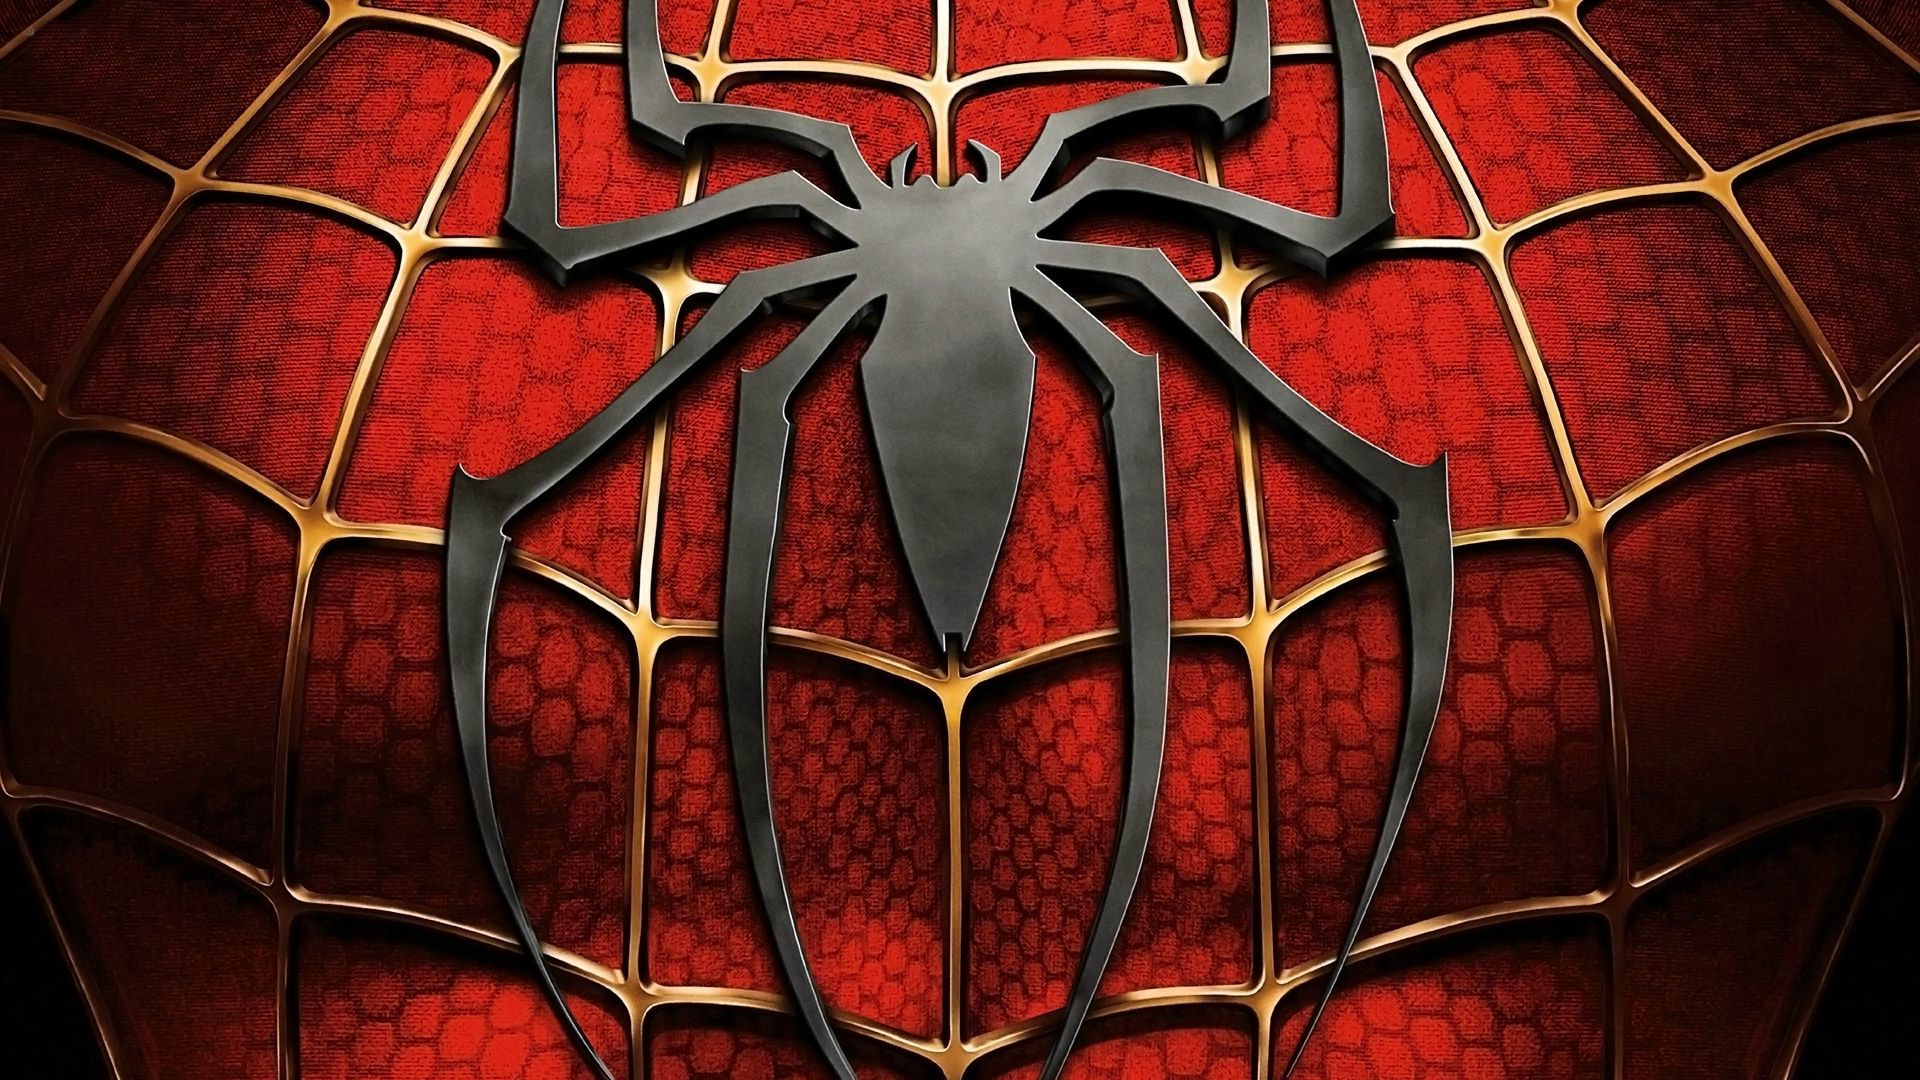 Spiderman Logo HD PC Wallpapers 260   HD Wallpapers Site 1920x1080